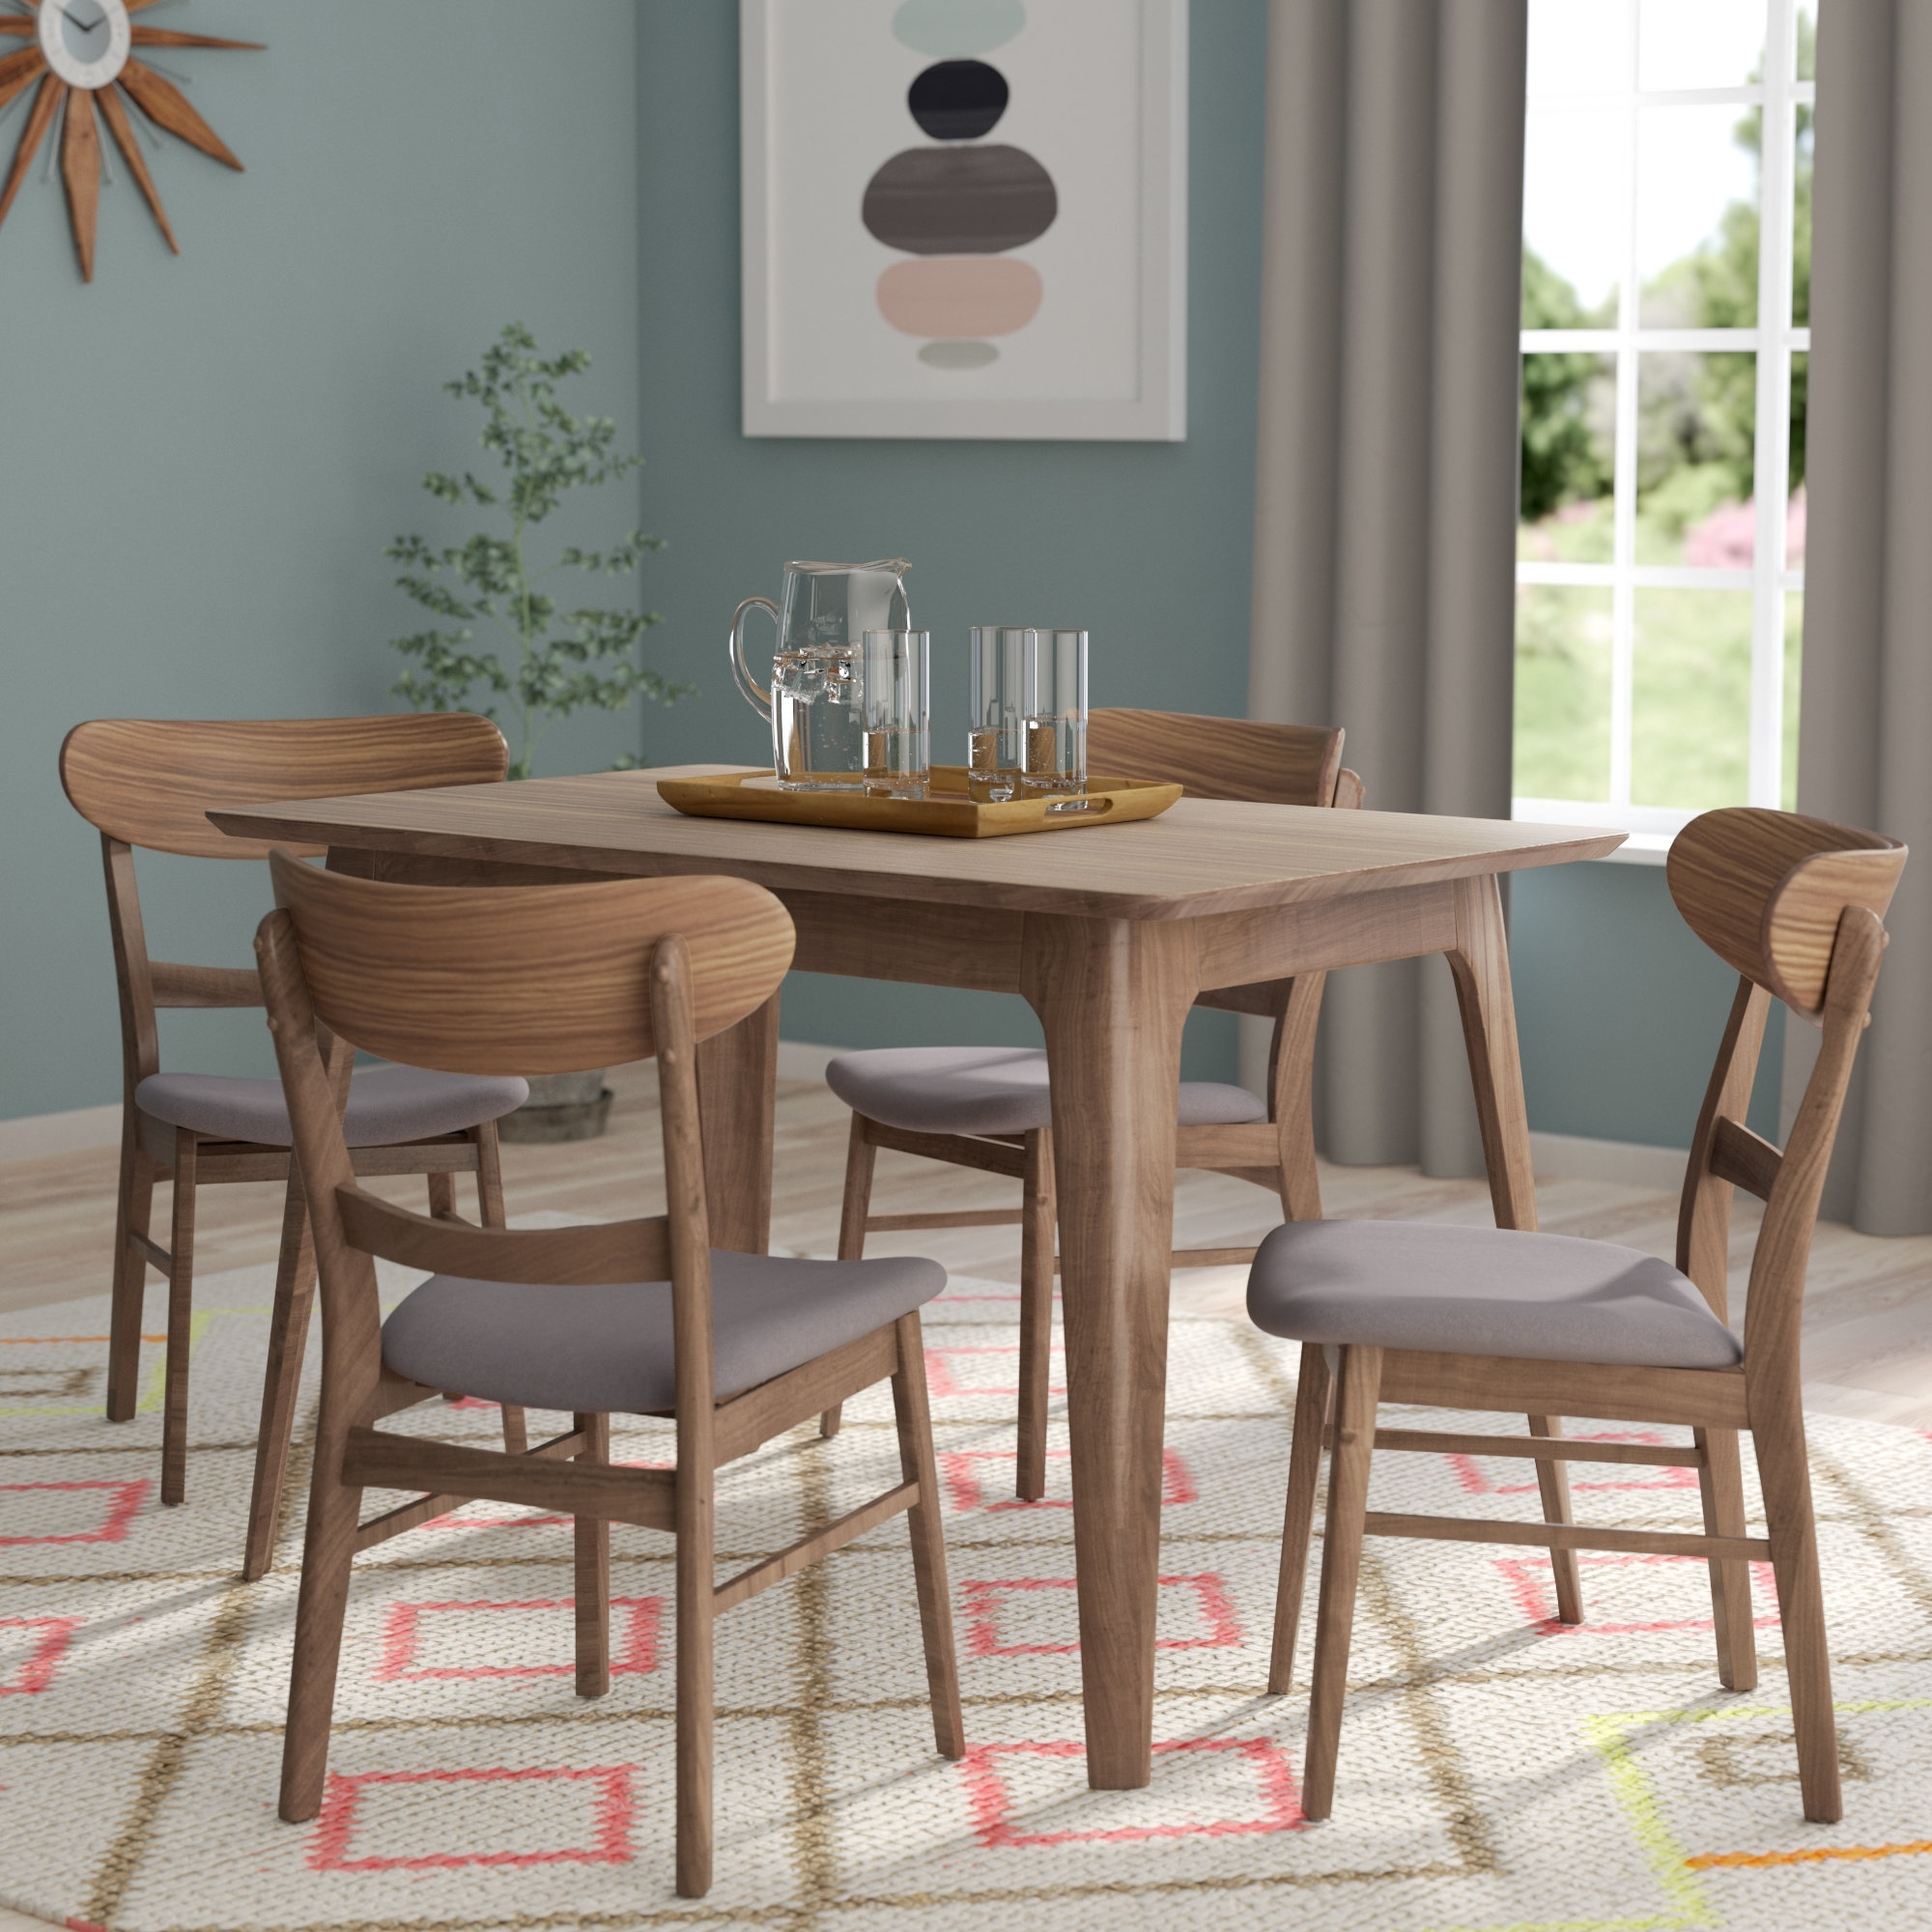 Craftsman 5 Piece Round Dining Sets With Uph Side Chairs With Regard To Best And Newest Langley Street Yolanda 5 Piece Wood Dining Set & Reviews (View 12 of 25)